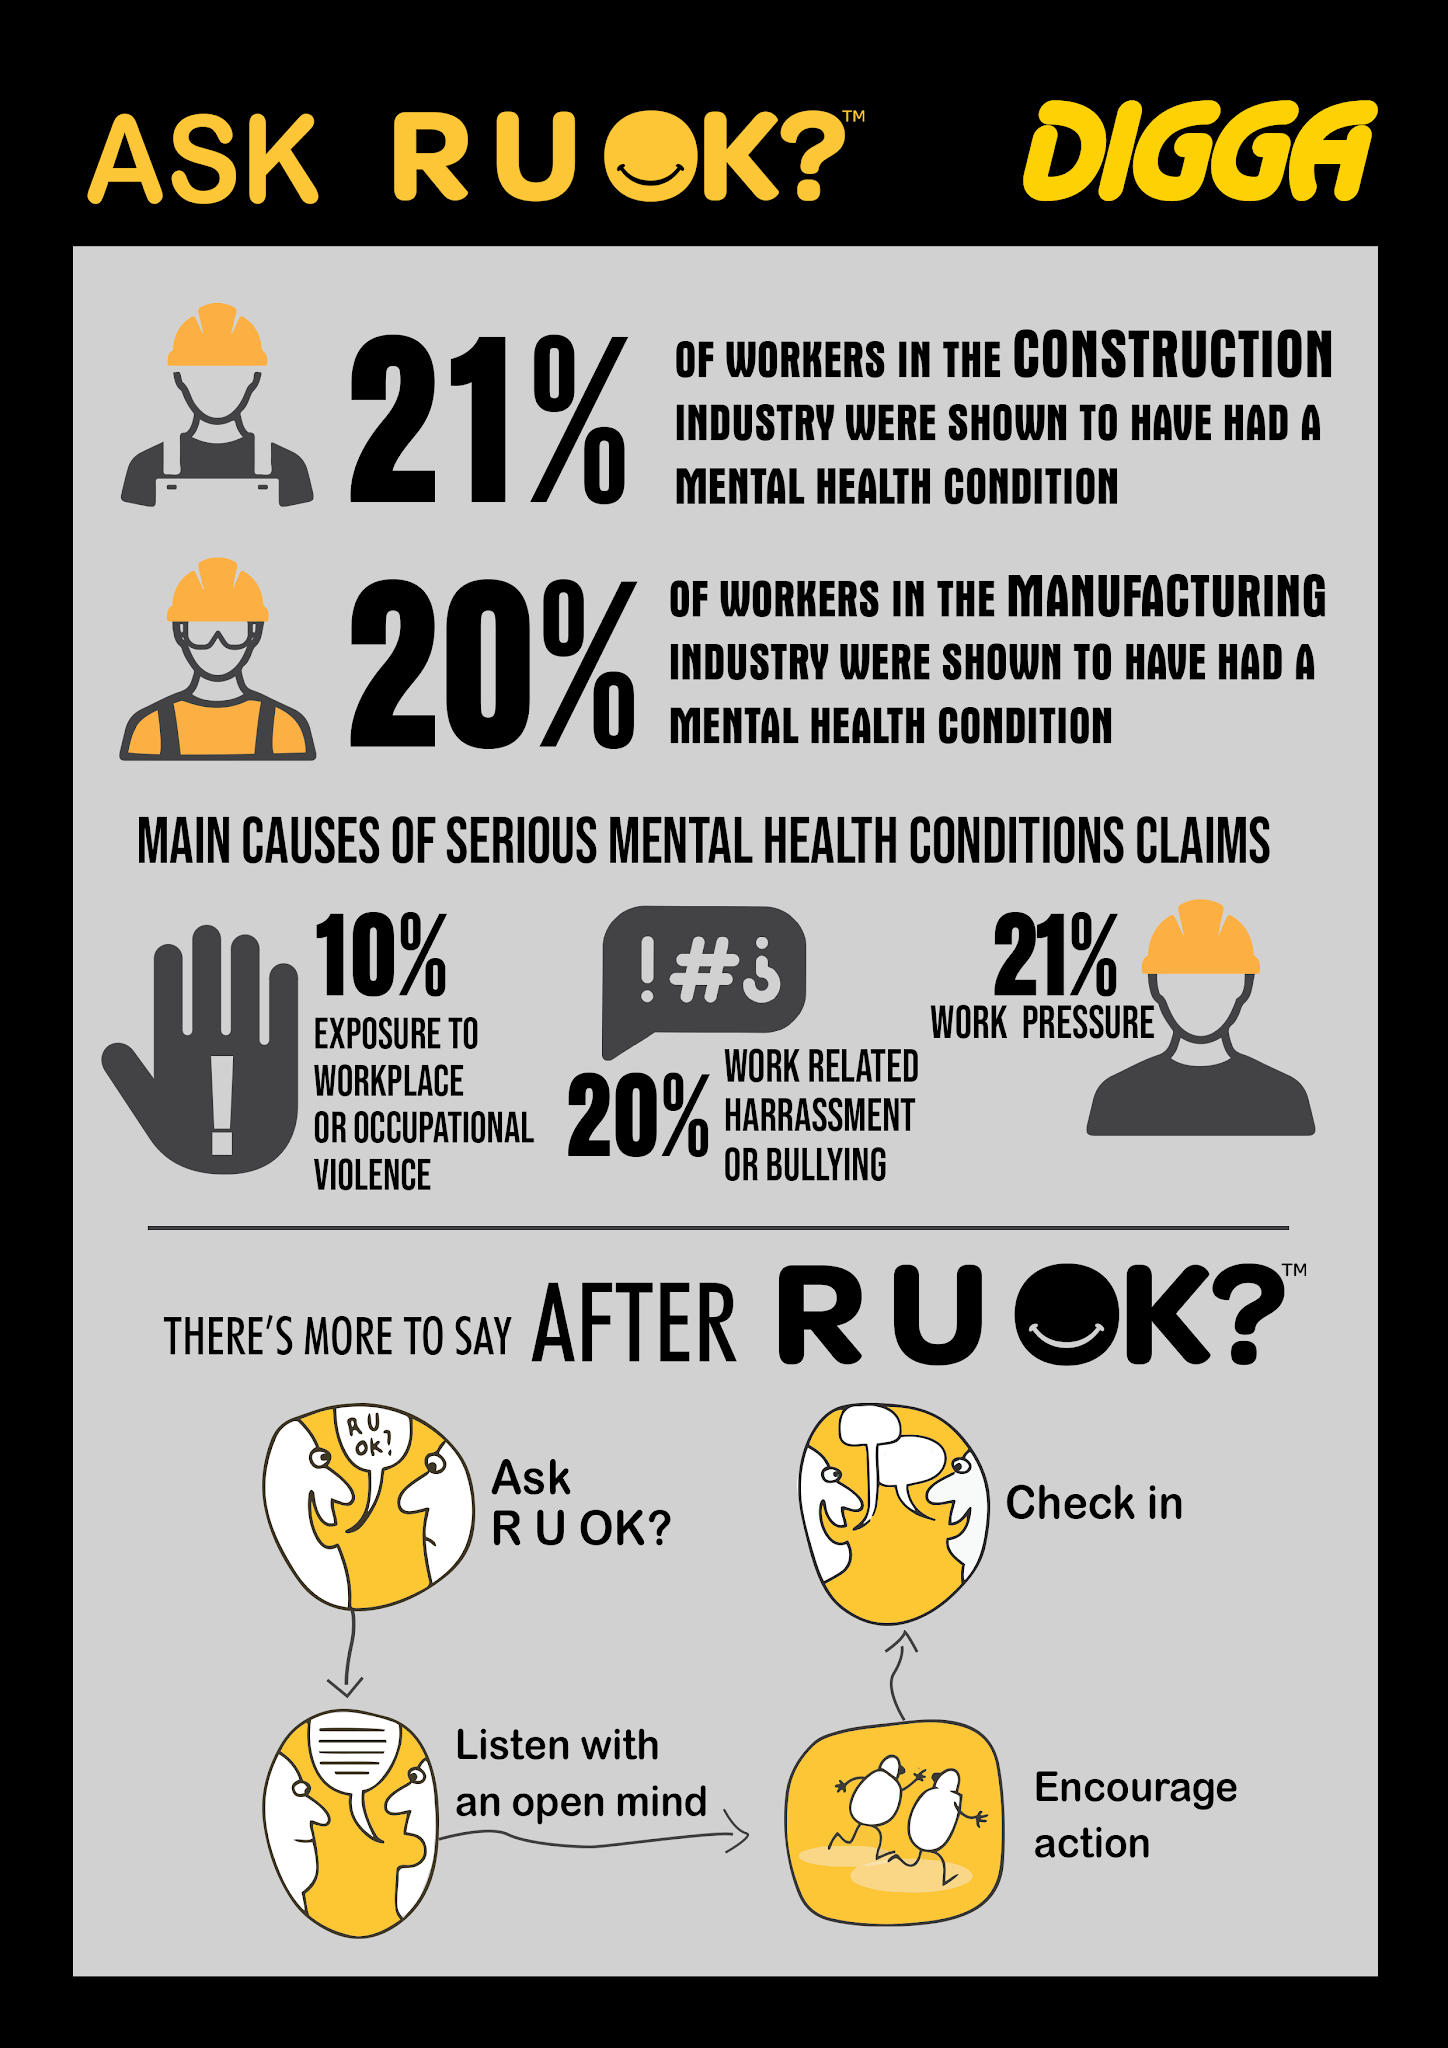 R U Ok Construction Industry - Ask a mate, save a life